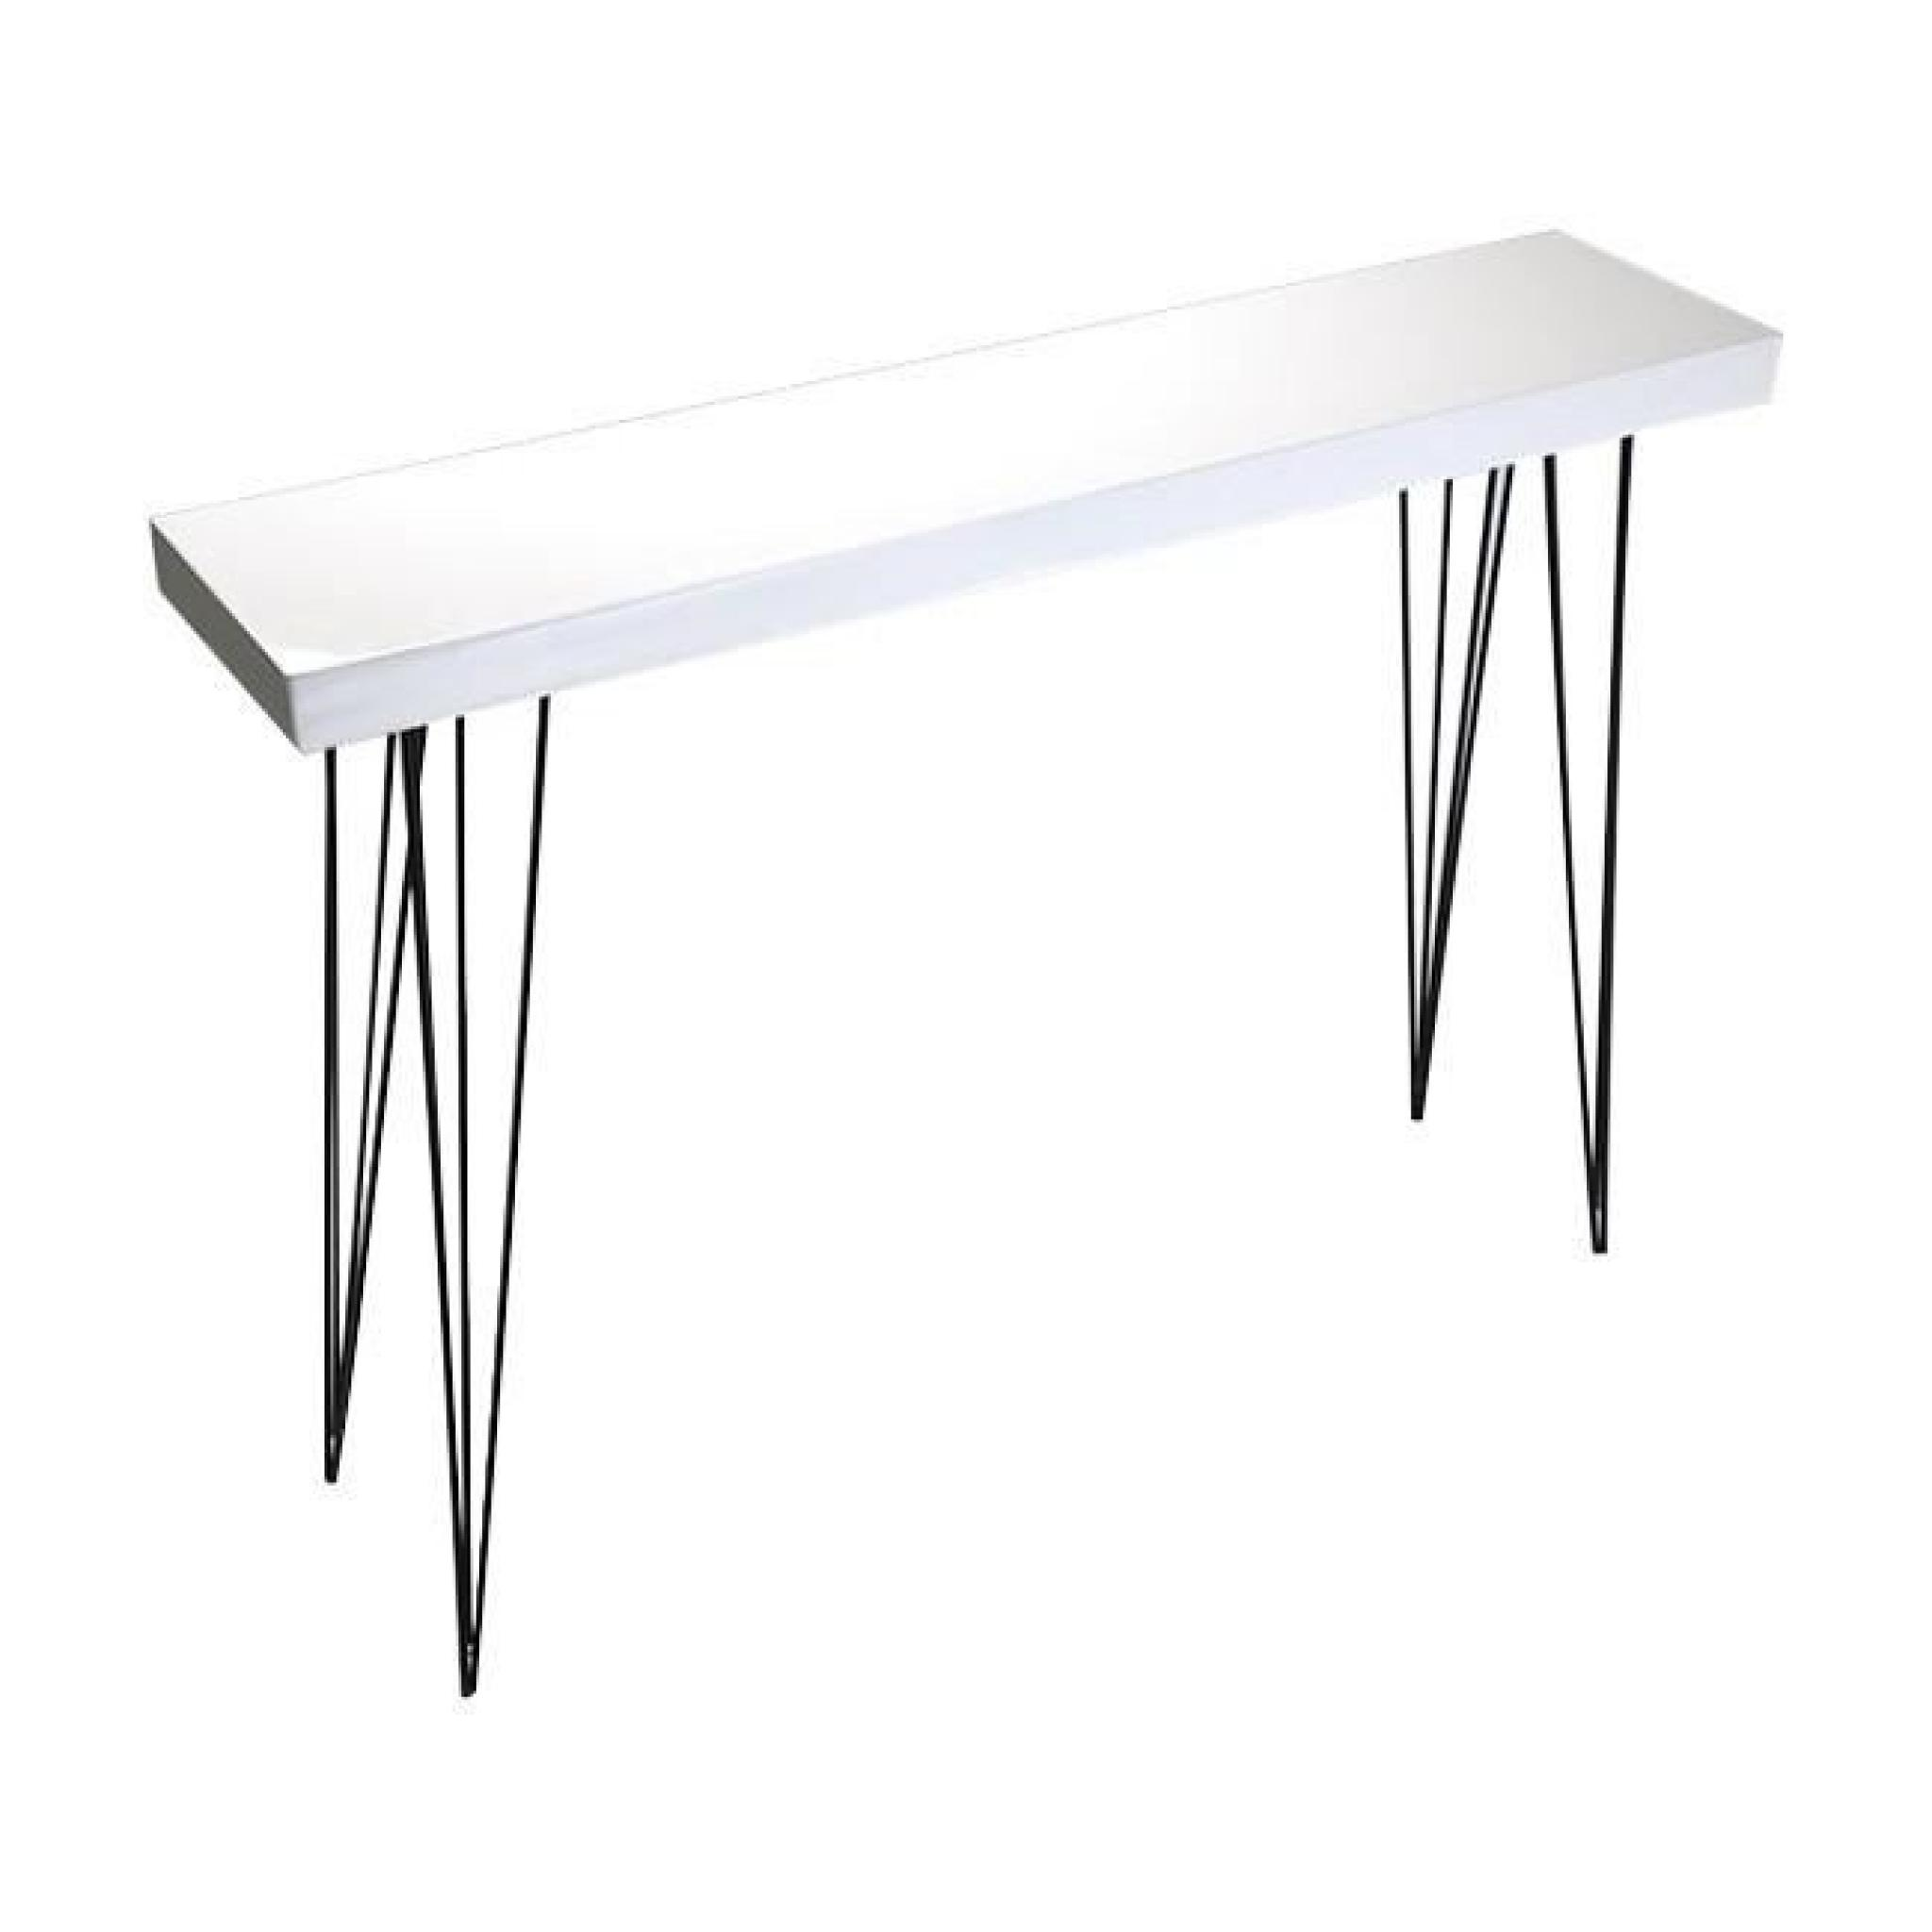 table d 39 entr e console en bois laqu blanc et m tal noir. Black Bedroom Furniture Sets. Home Design Ideas